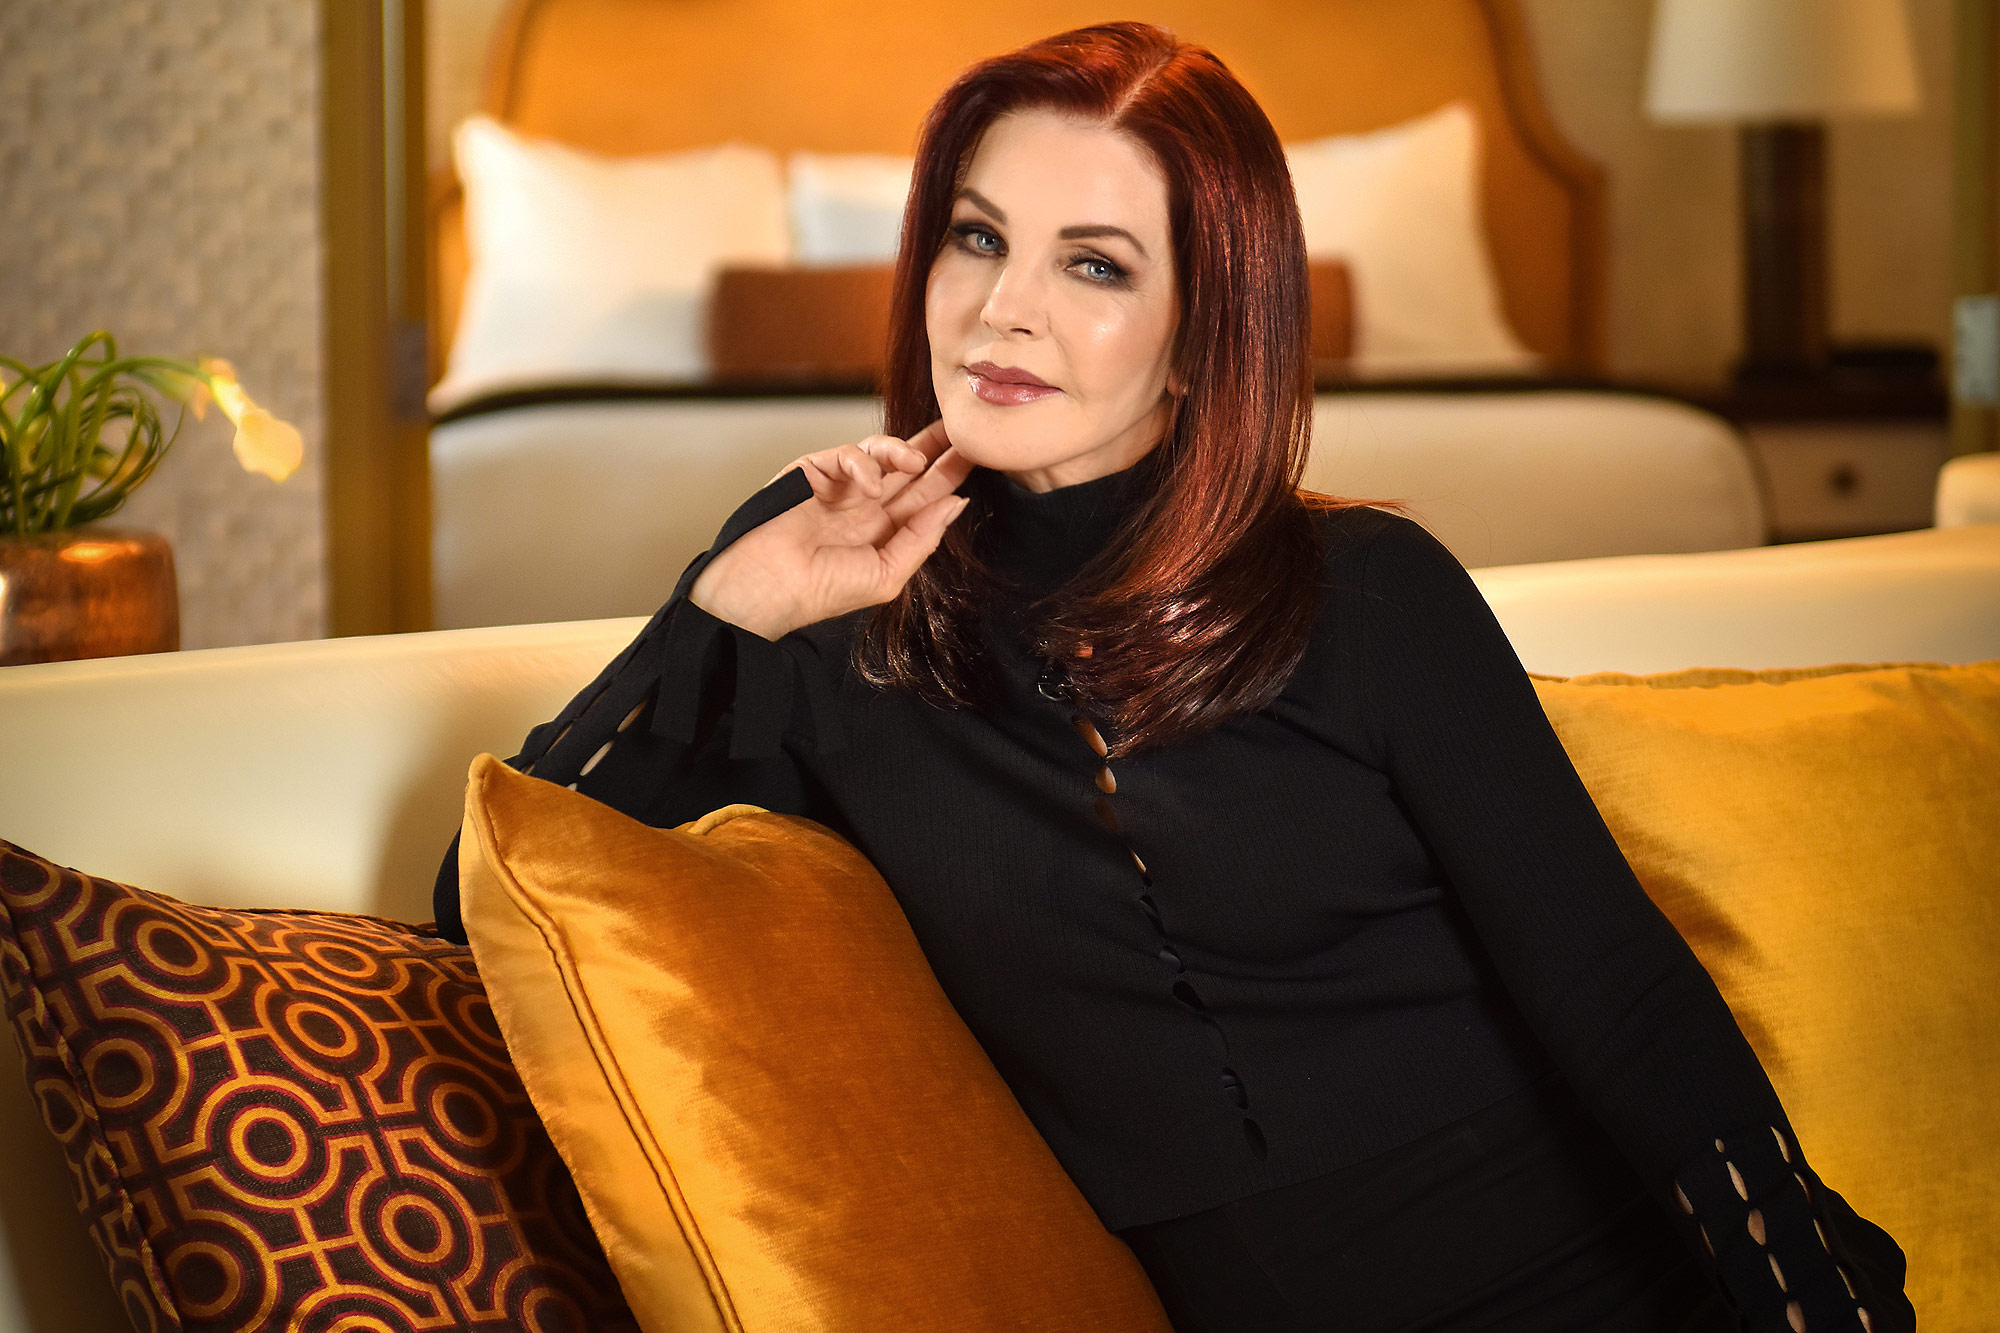 Priscilla Presley, $16 Million